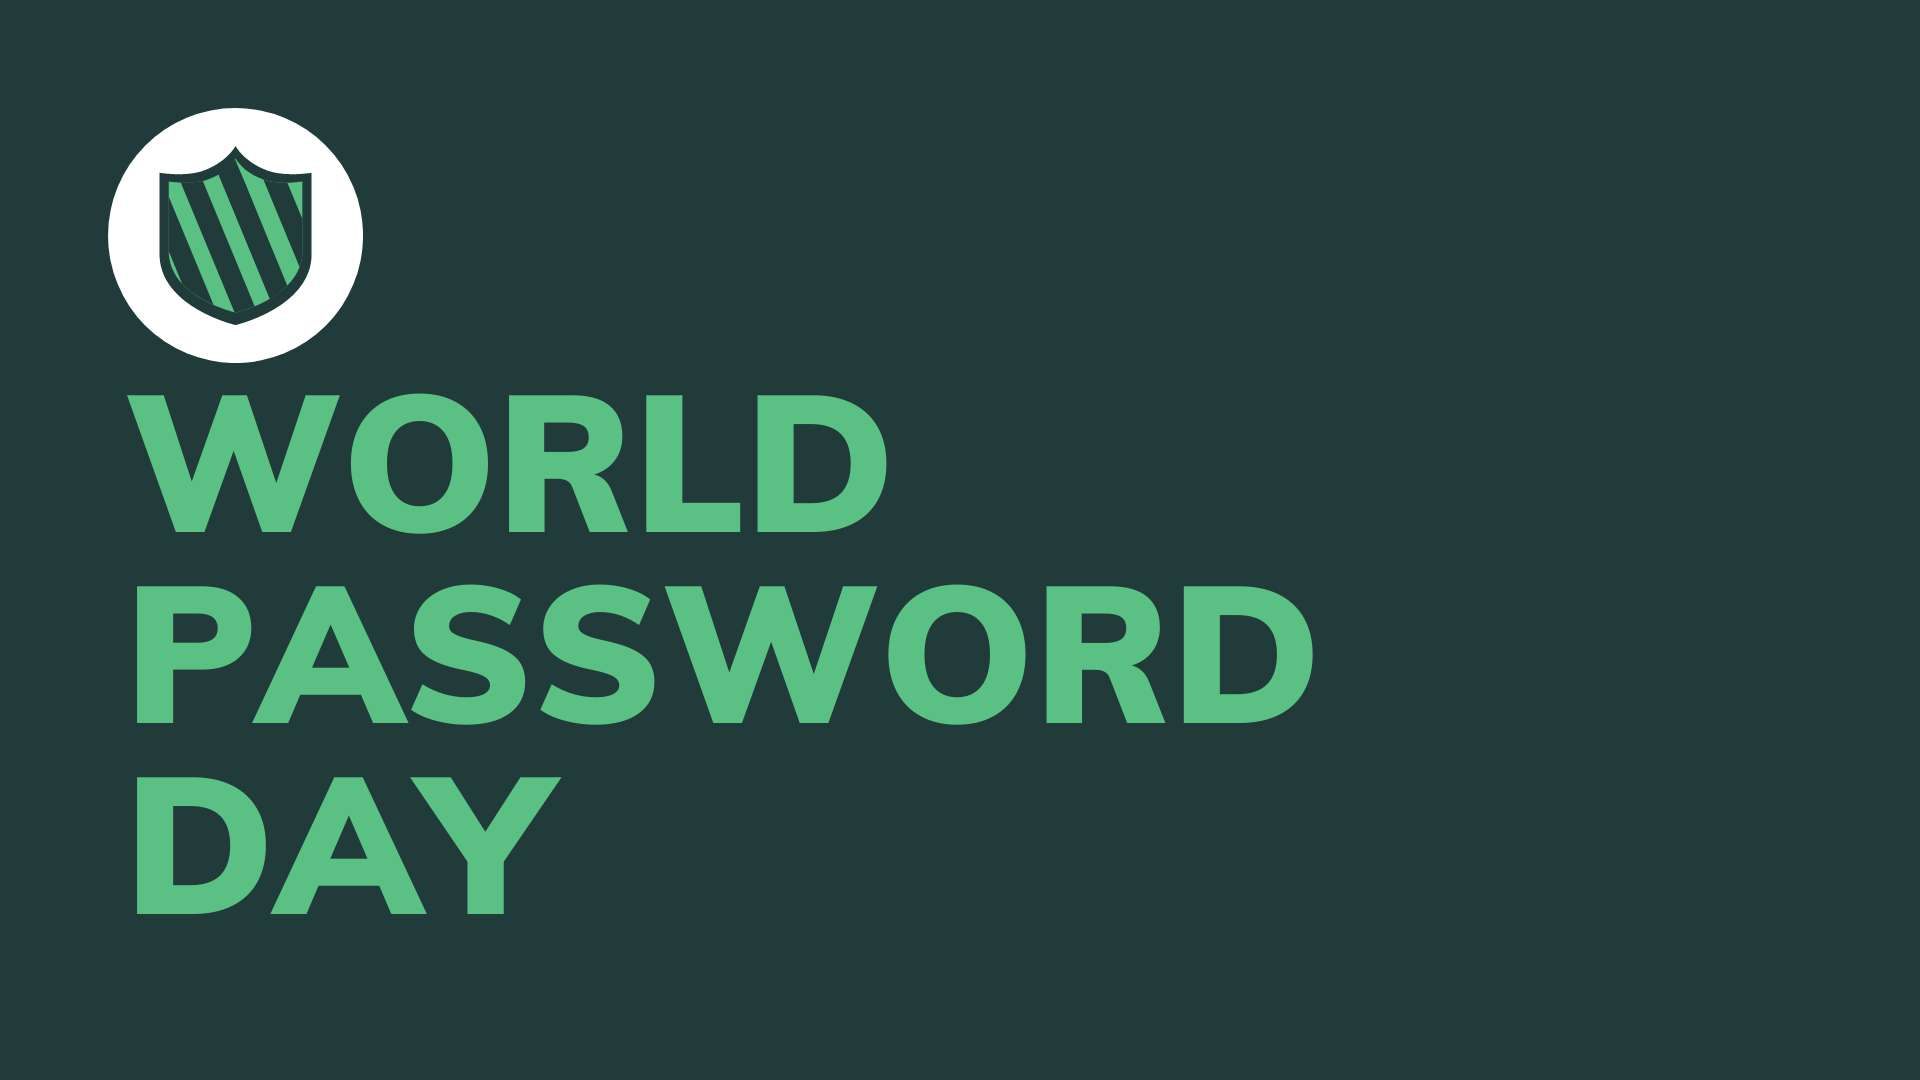 World Password Day Wishes Awesome Images, Pictures, Photos, Wallpapers